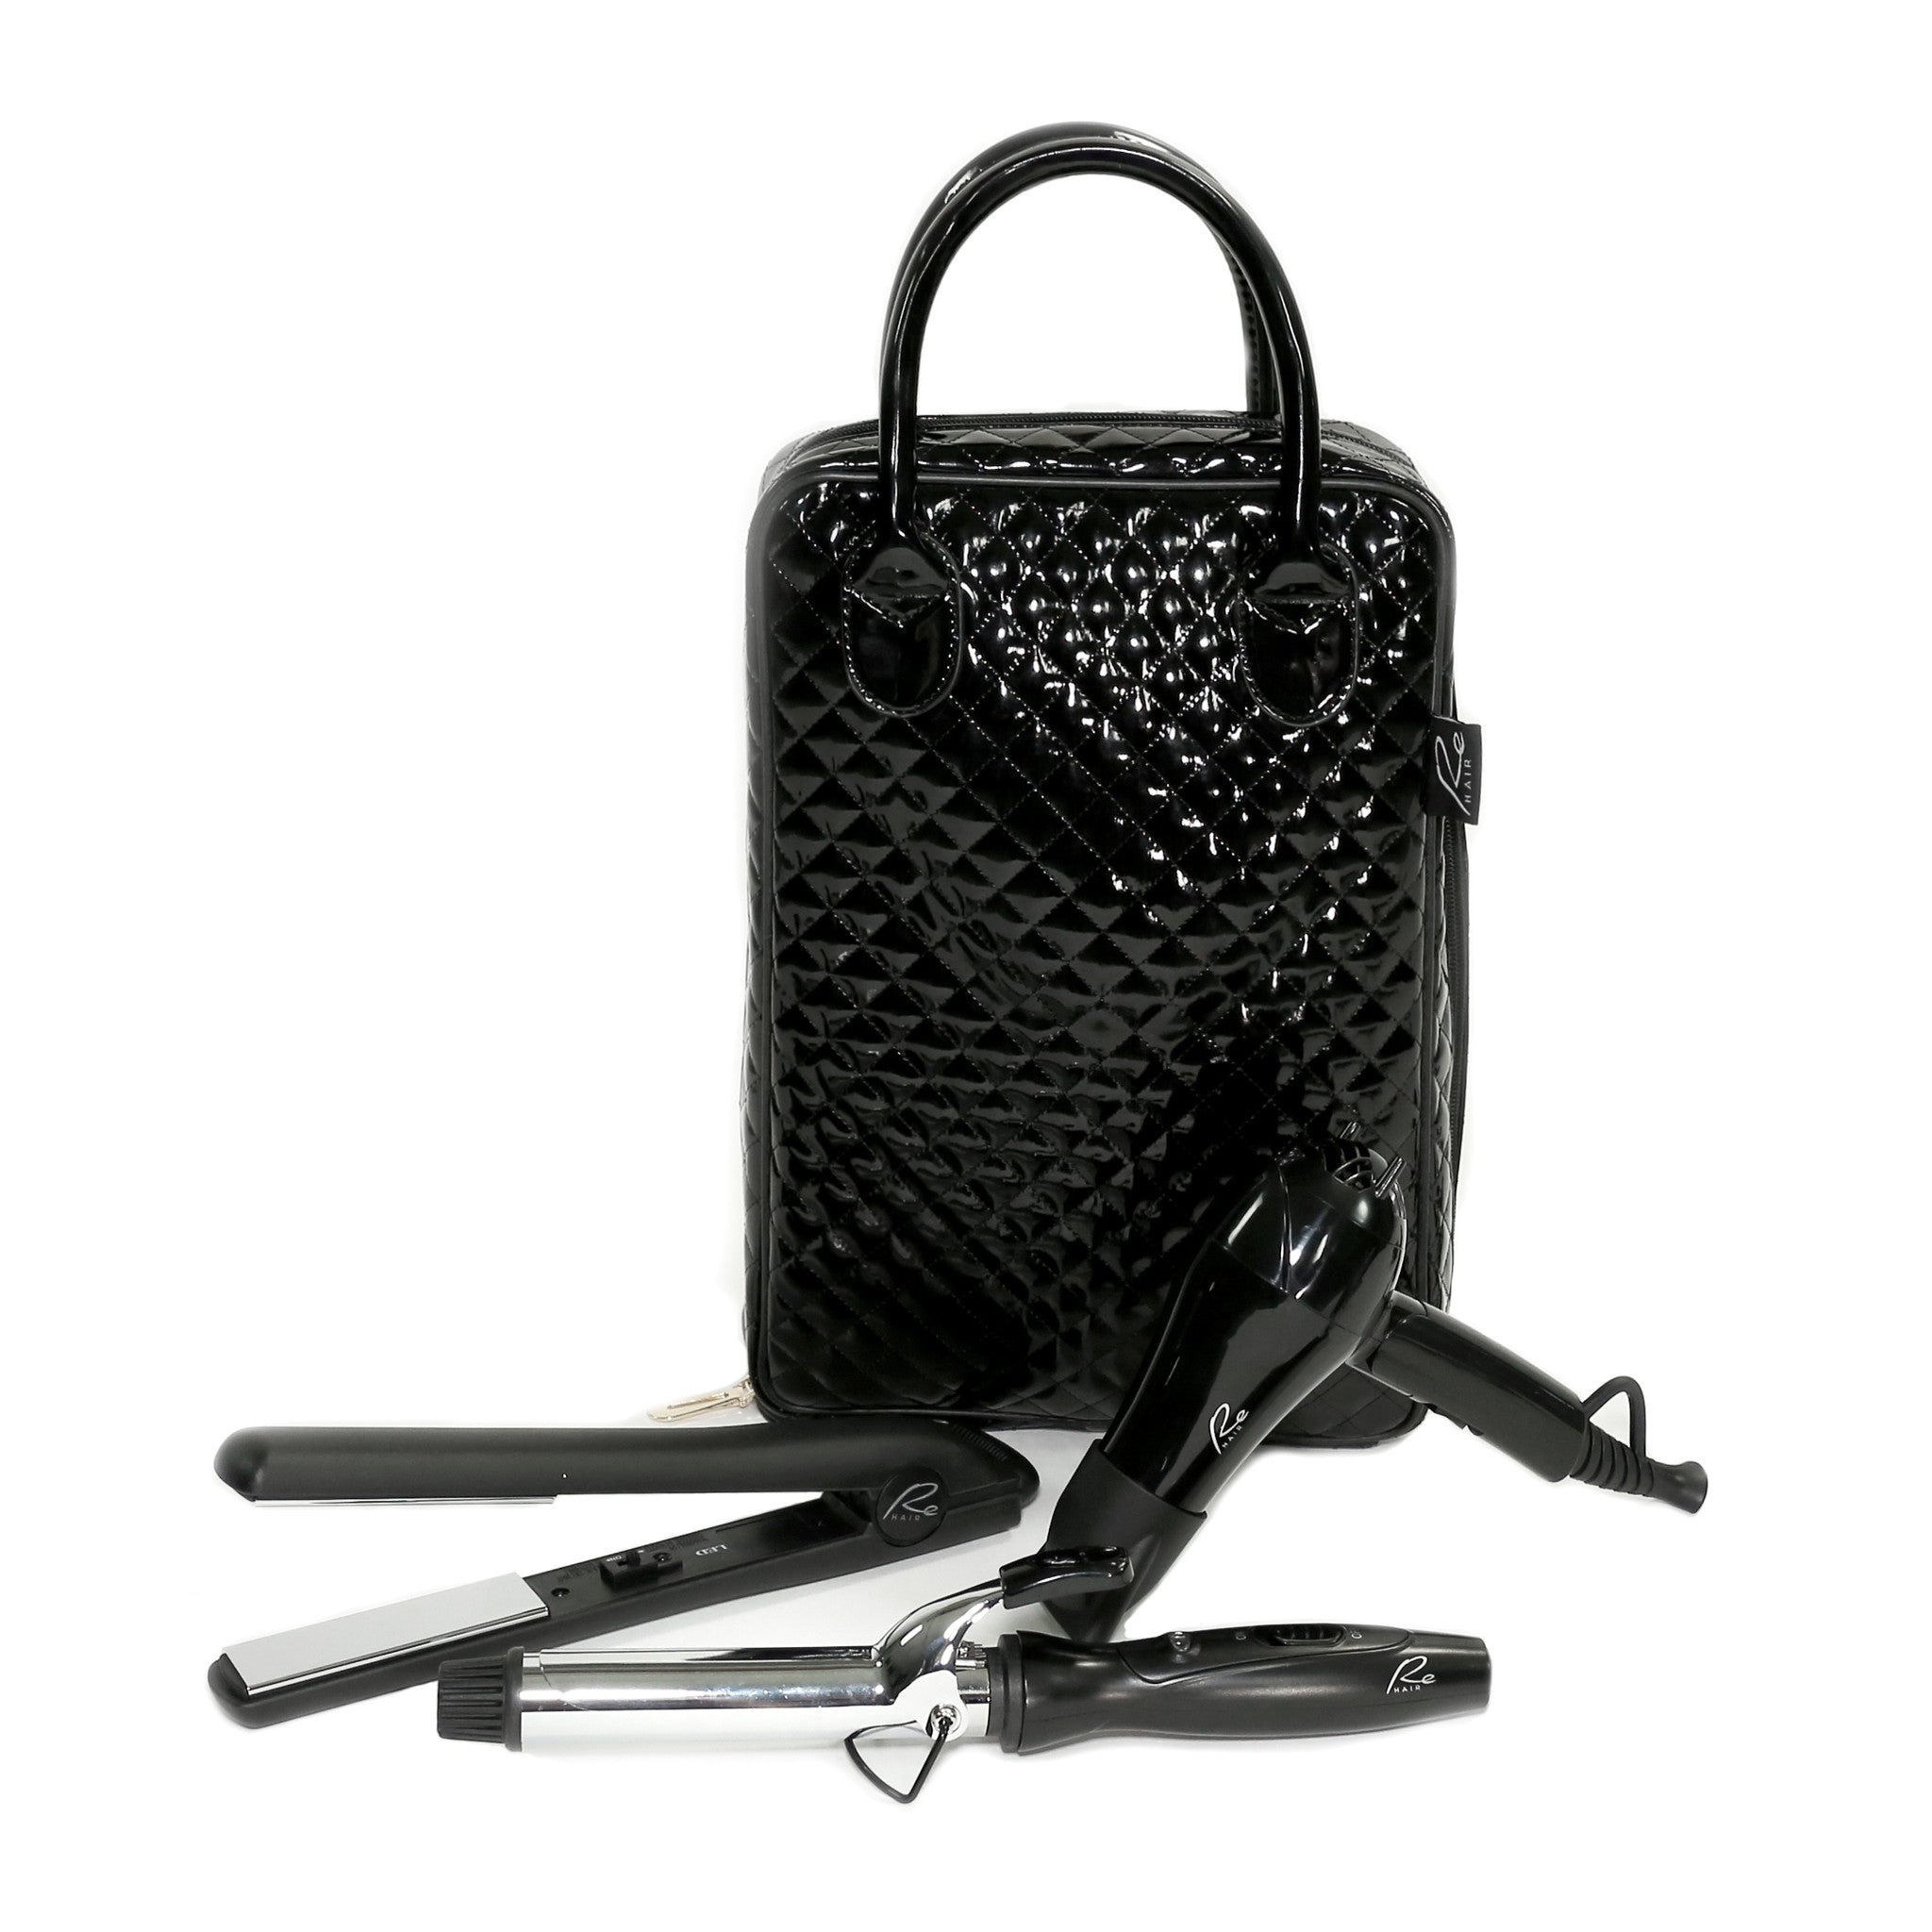 Hair Guru Fashionable Travel 5-Piece Hair Tool Kit with Luxury Carrying Bag Included